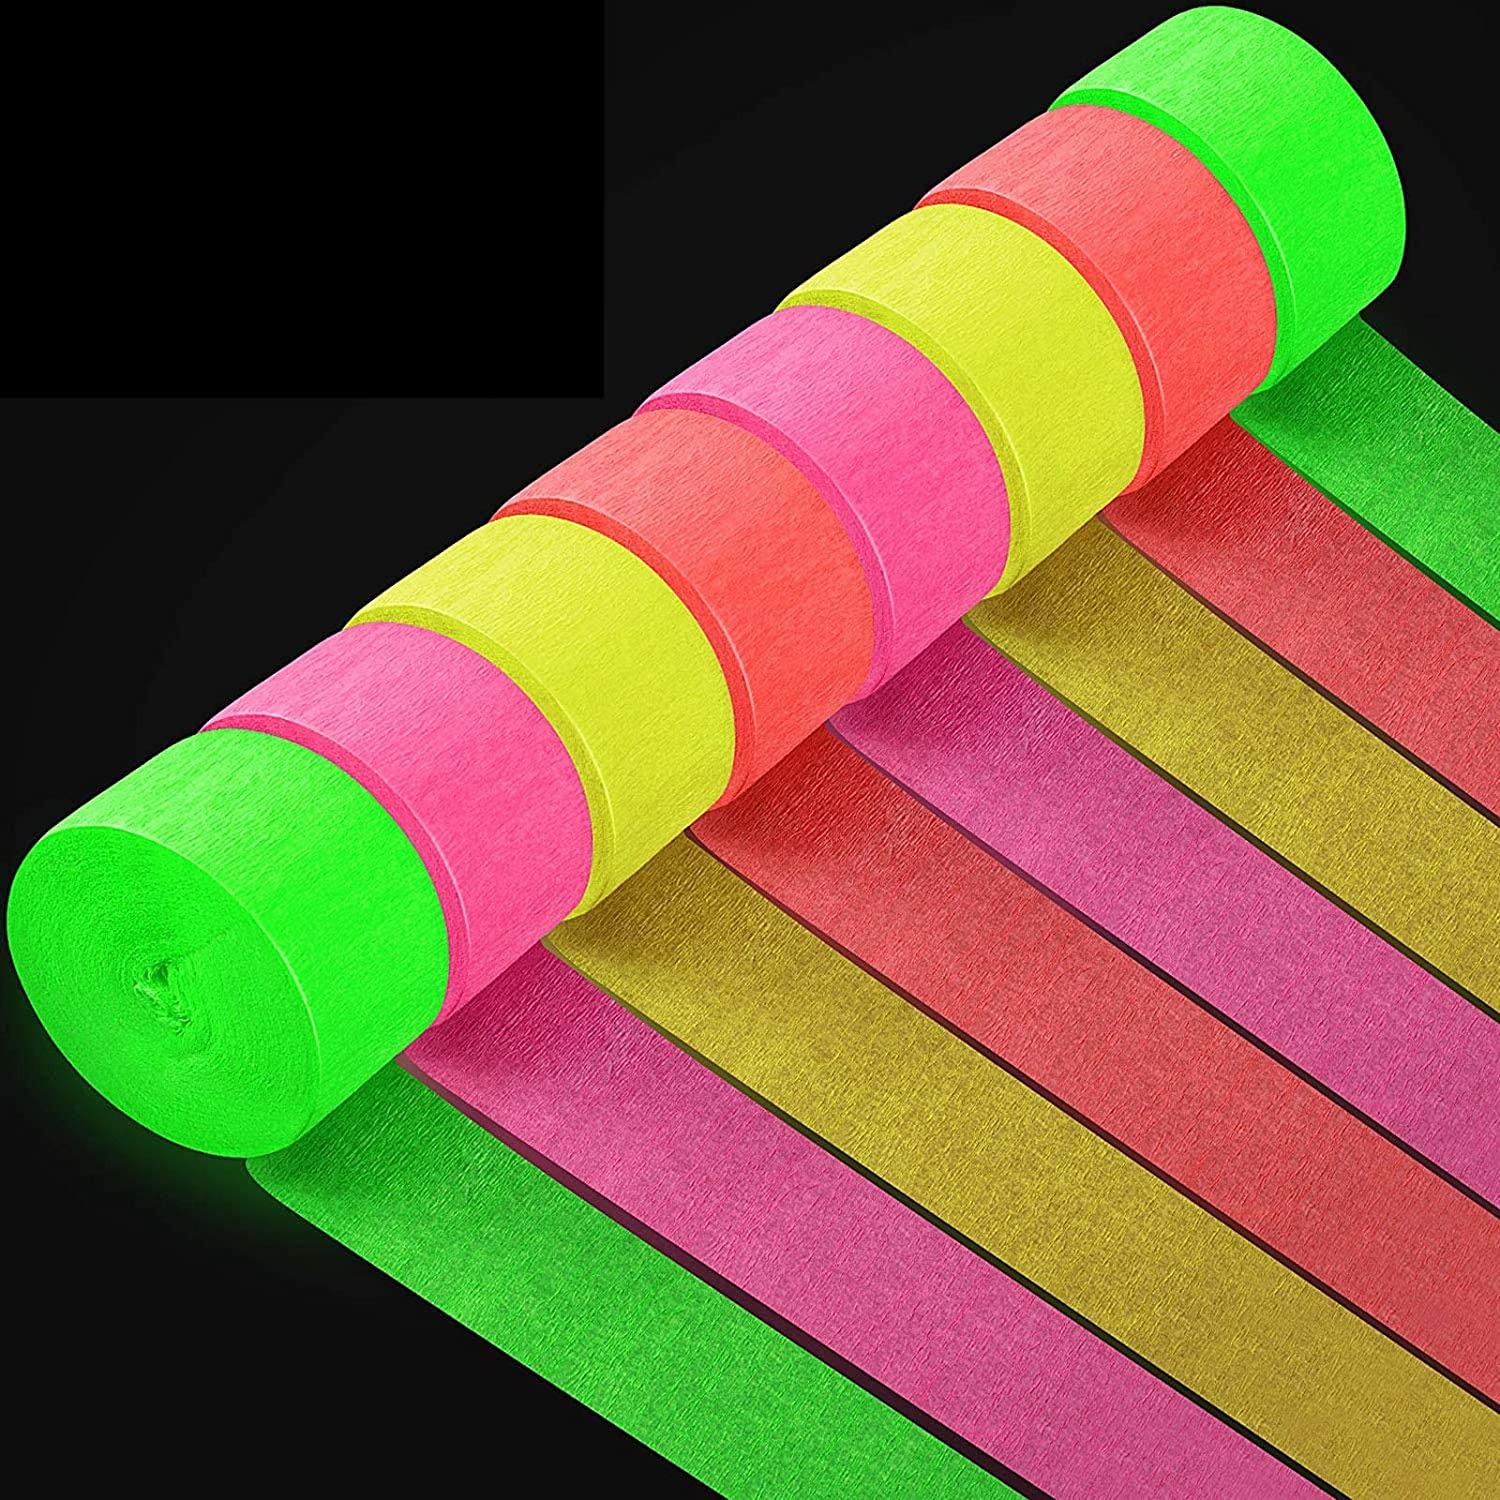 excellence 8 Rolls 1312.3 Ft Totally Streamers Crepe Paper Glow Party Max 87% OFF